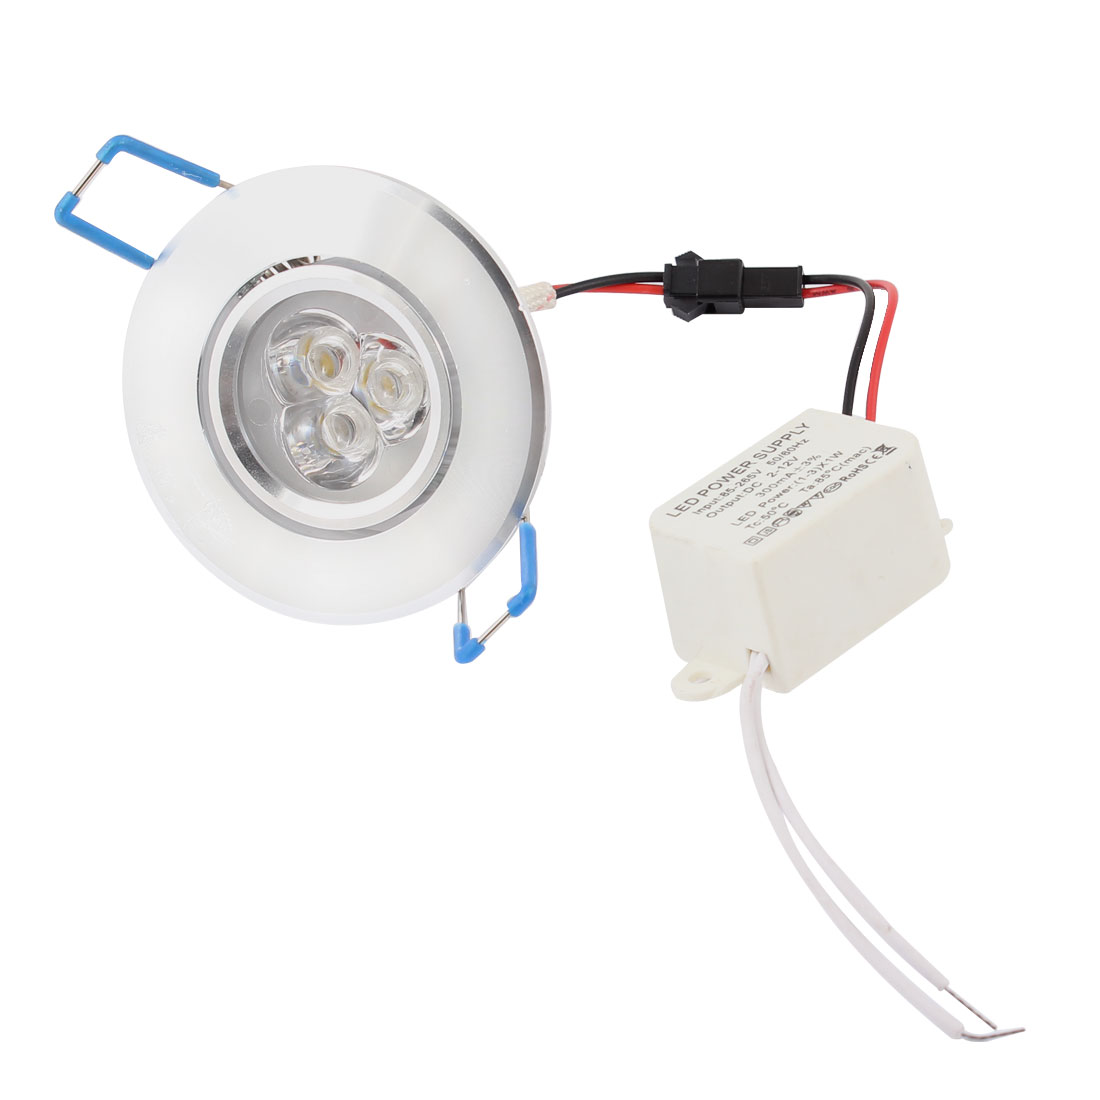 Warm White 3 LEDs Light Recessed Cabinet Ceiling Down Lamp Bulb AC100V-260V 3W